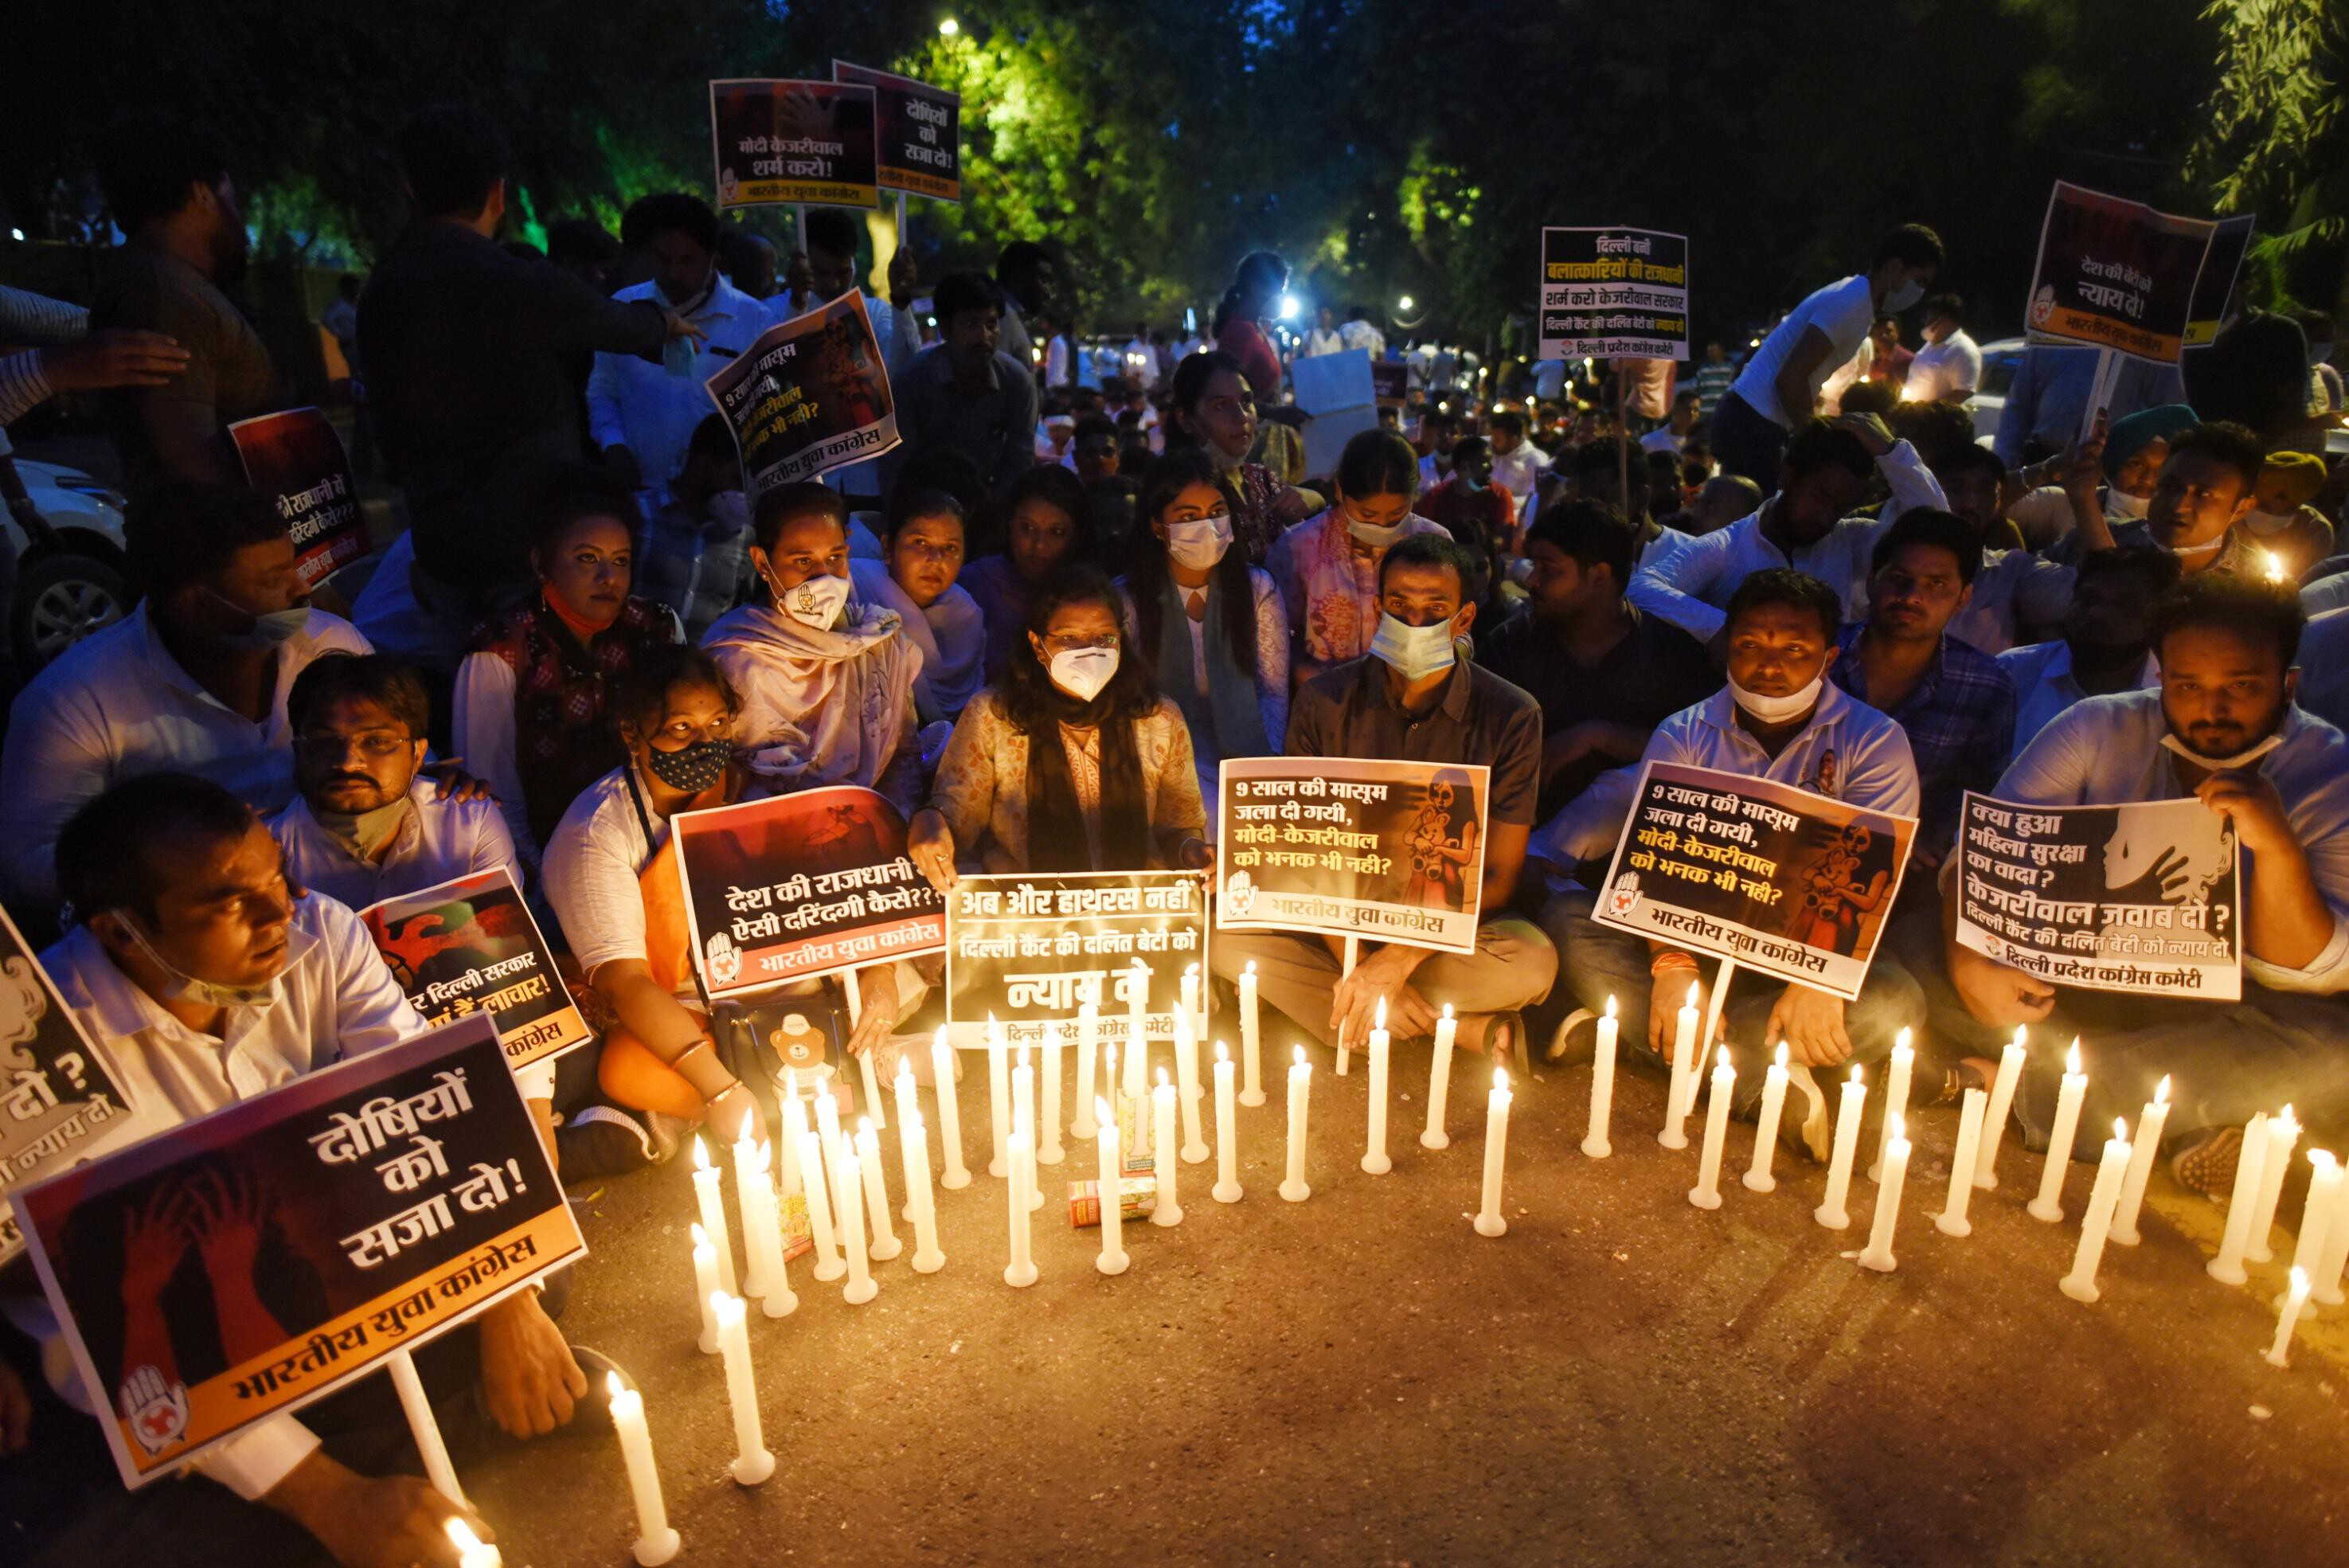 A 9-year-old girl was raped and murdered in India. Her death is part of a bigger problem facing Dalit women